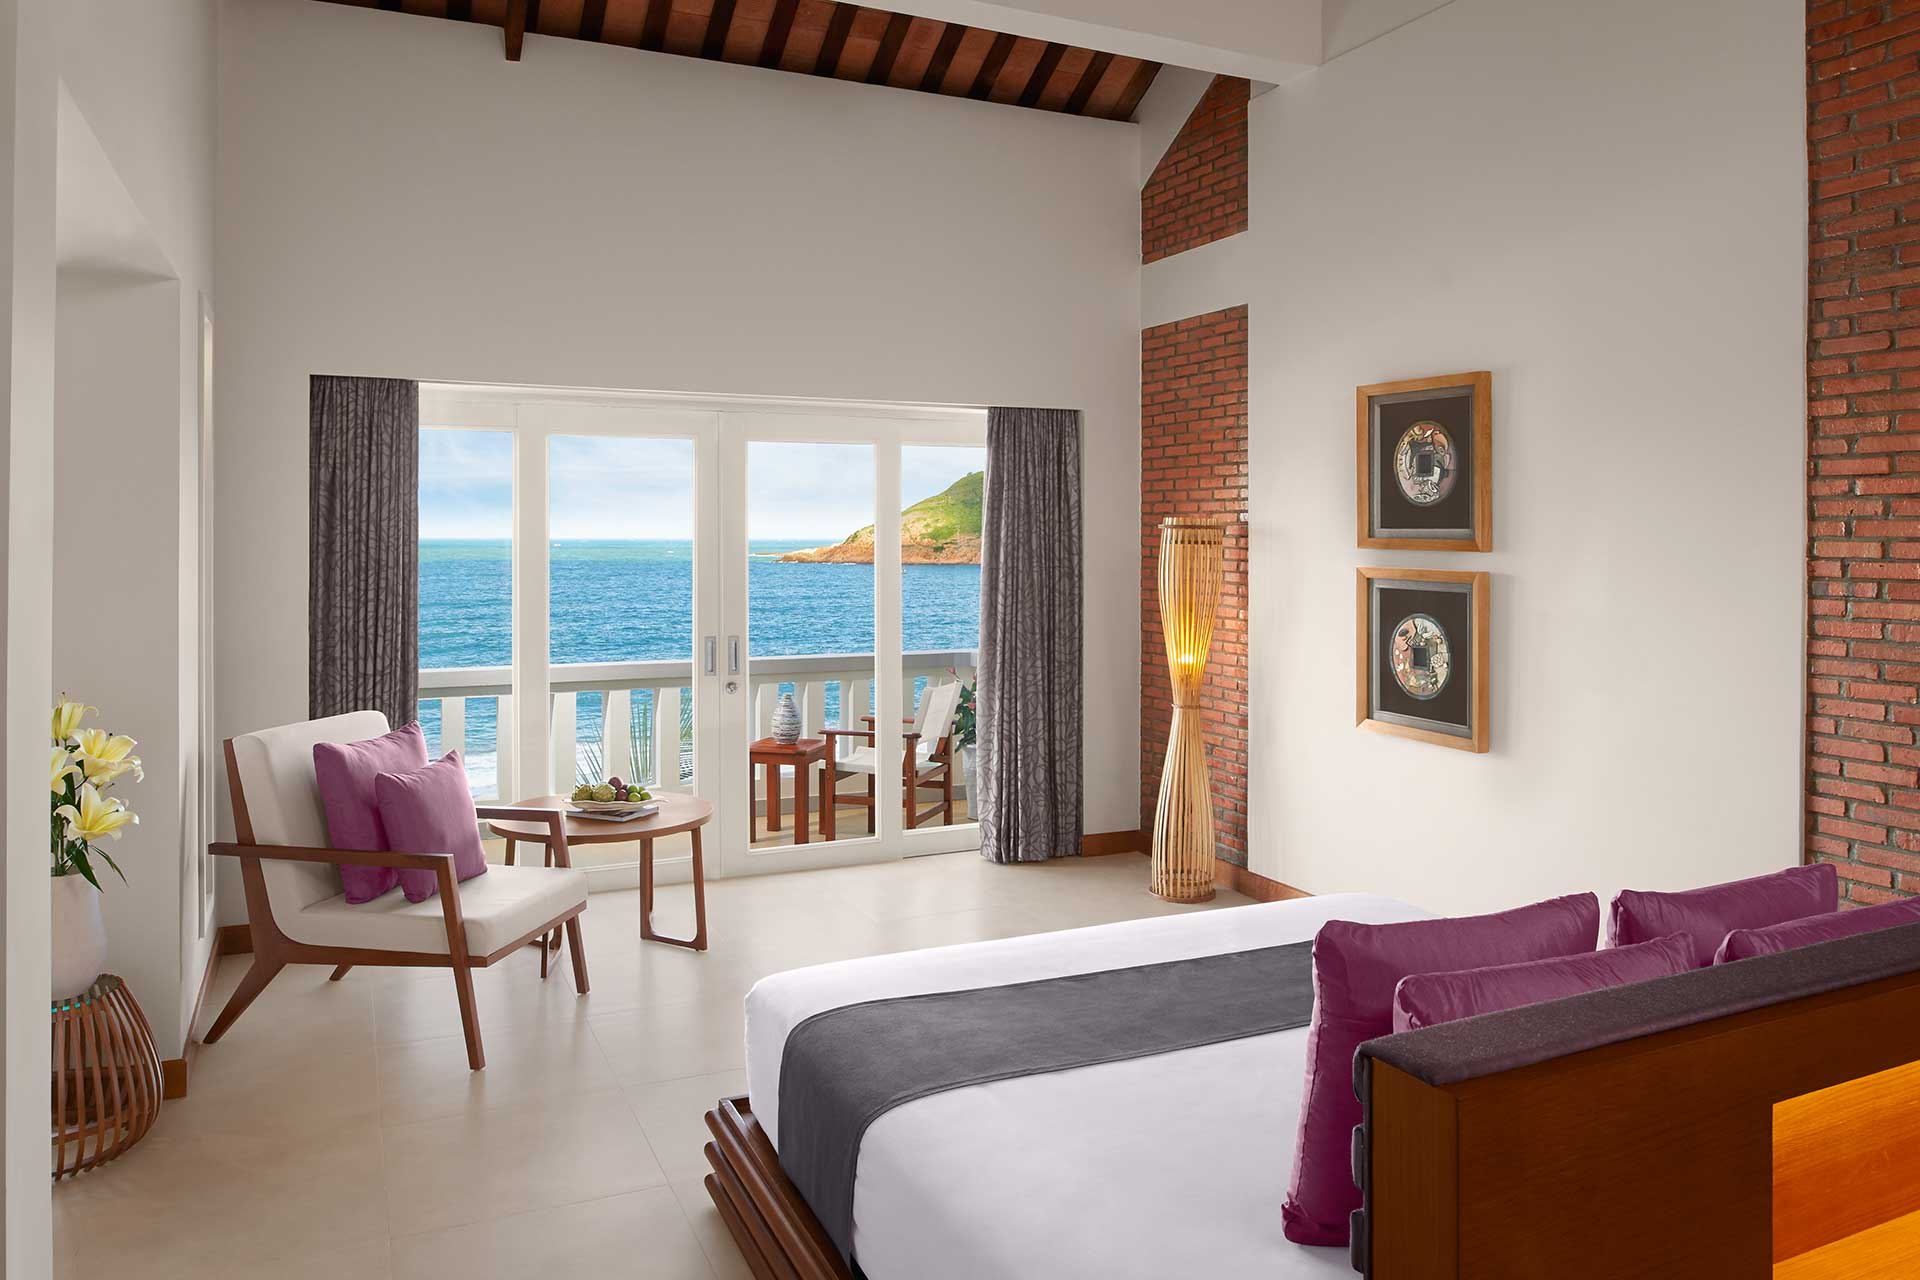 A Deluxe studio room at AVANI Quy Nhon with sea view